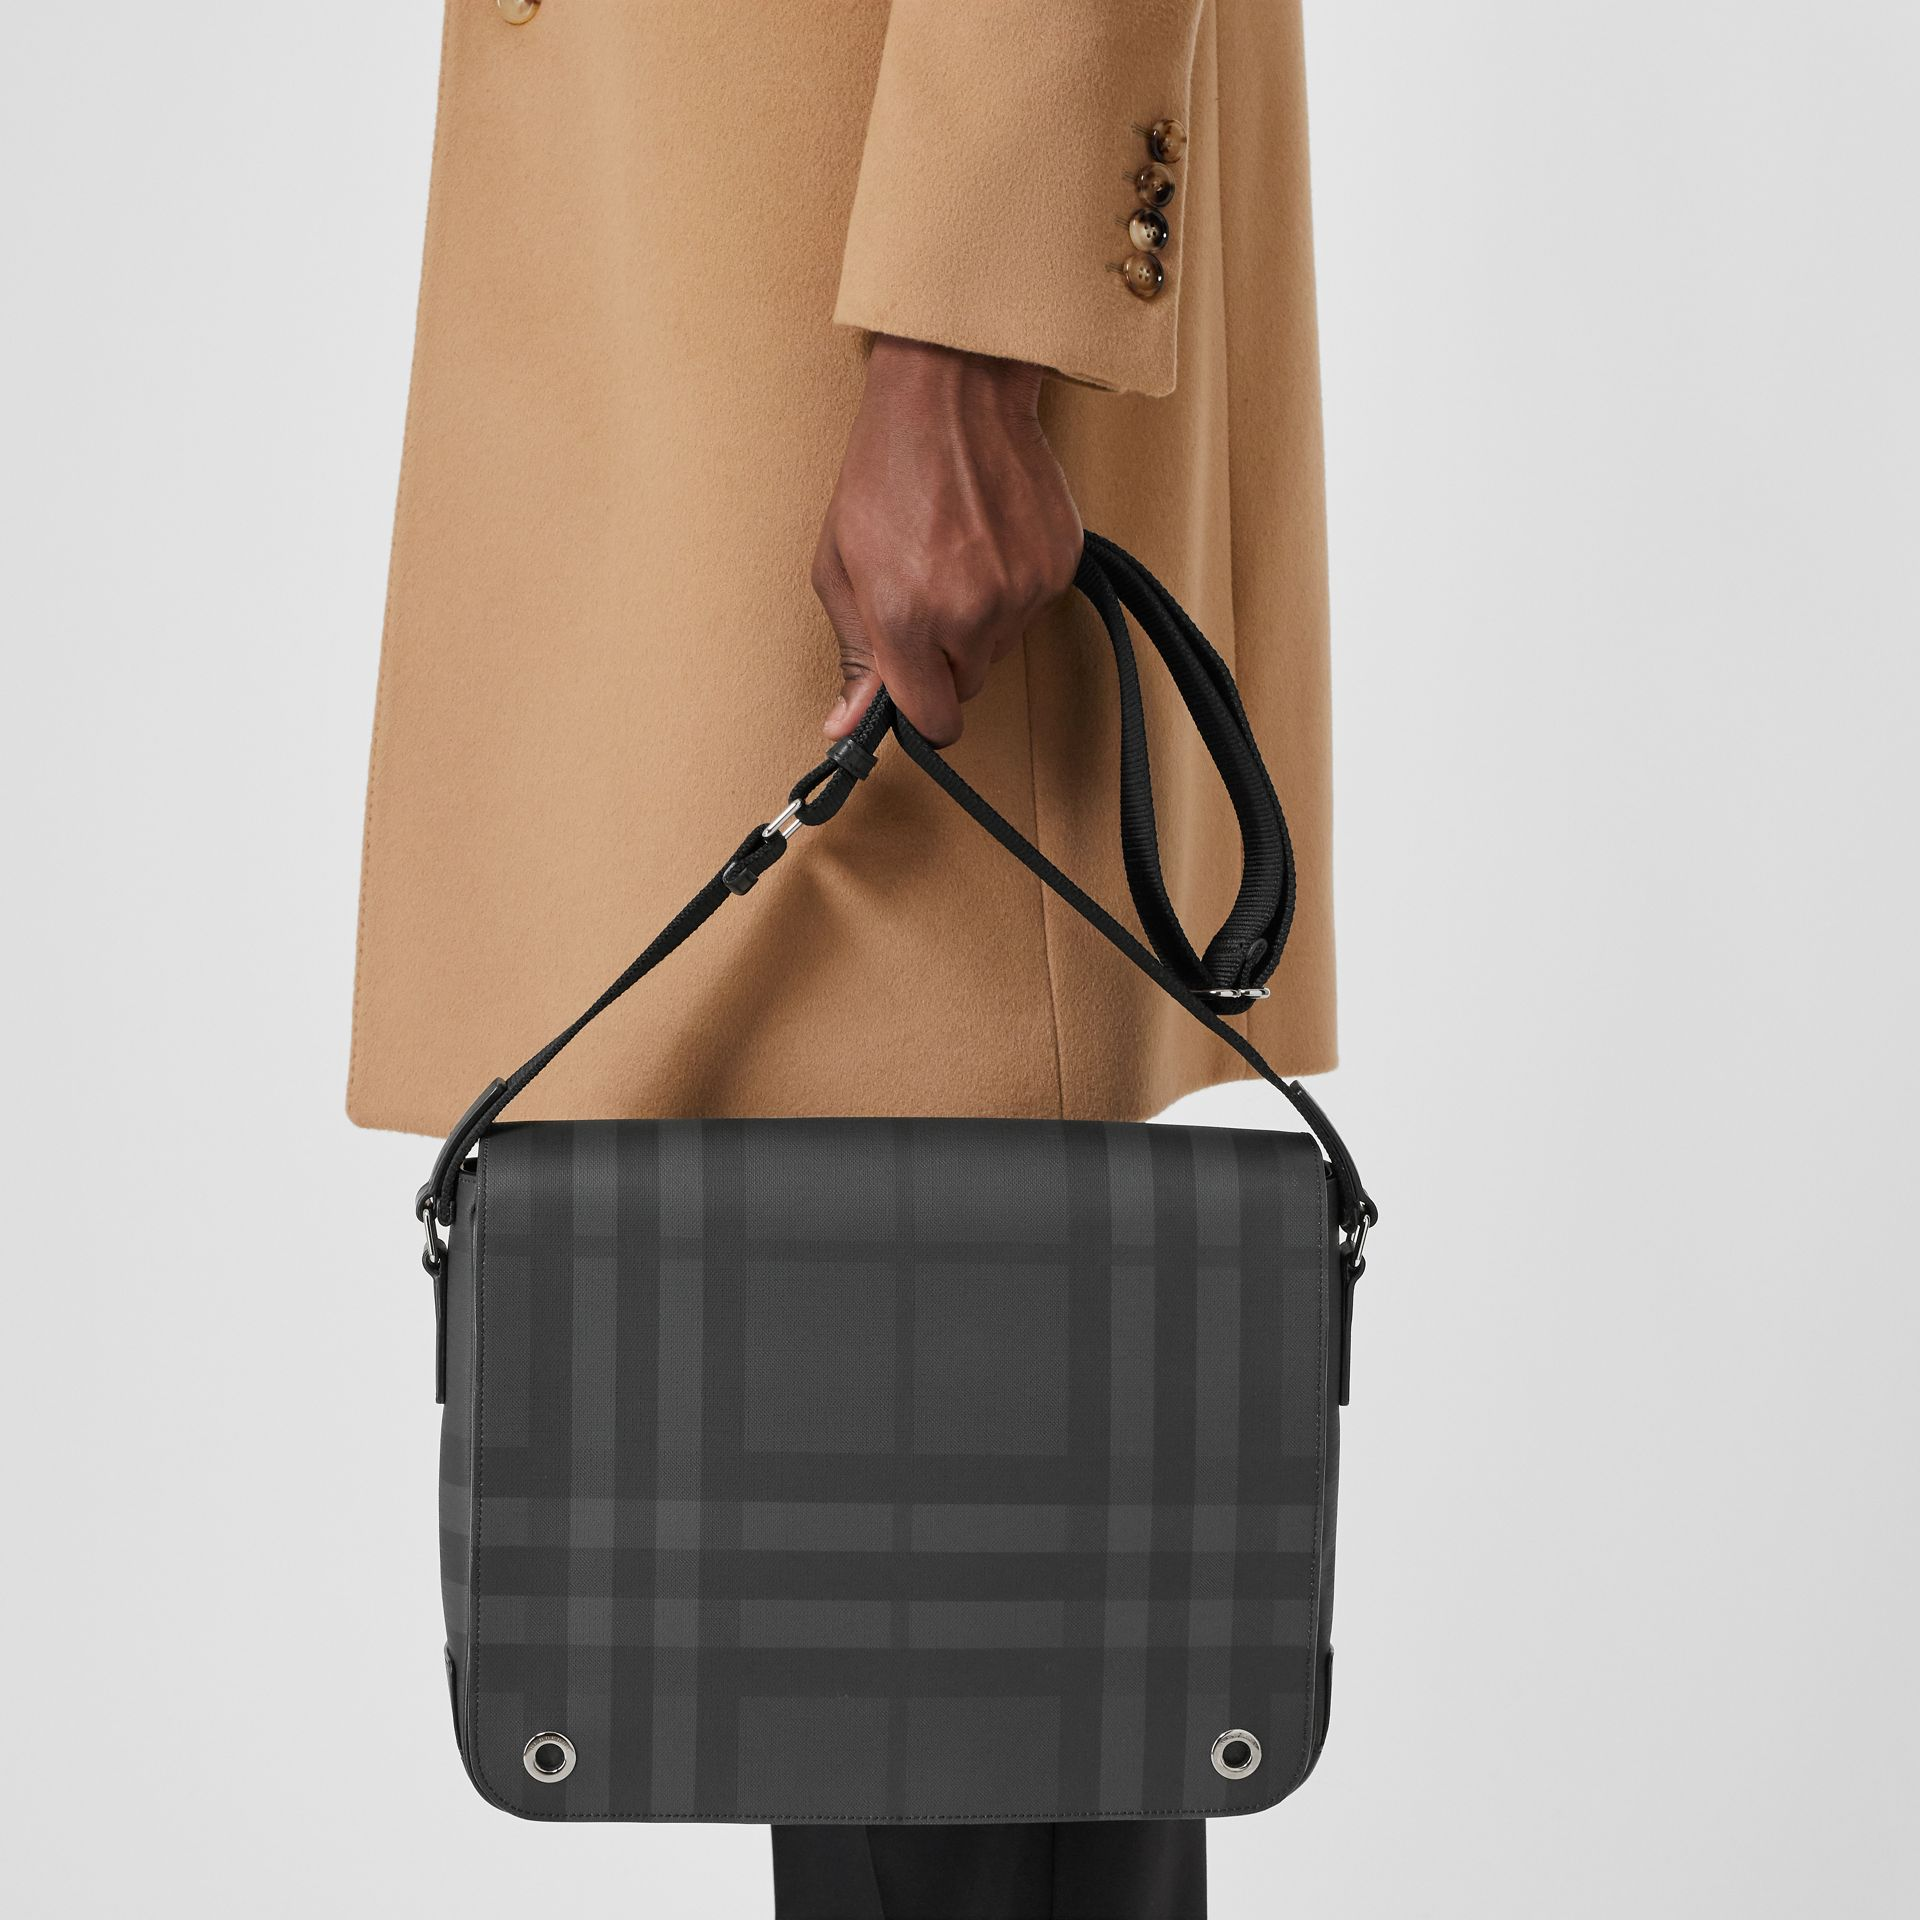 Sac cartable en tissu London check et cuir (Anthracite Sombre) - Homme | Burberry - photo de la galerie 2